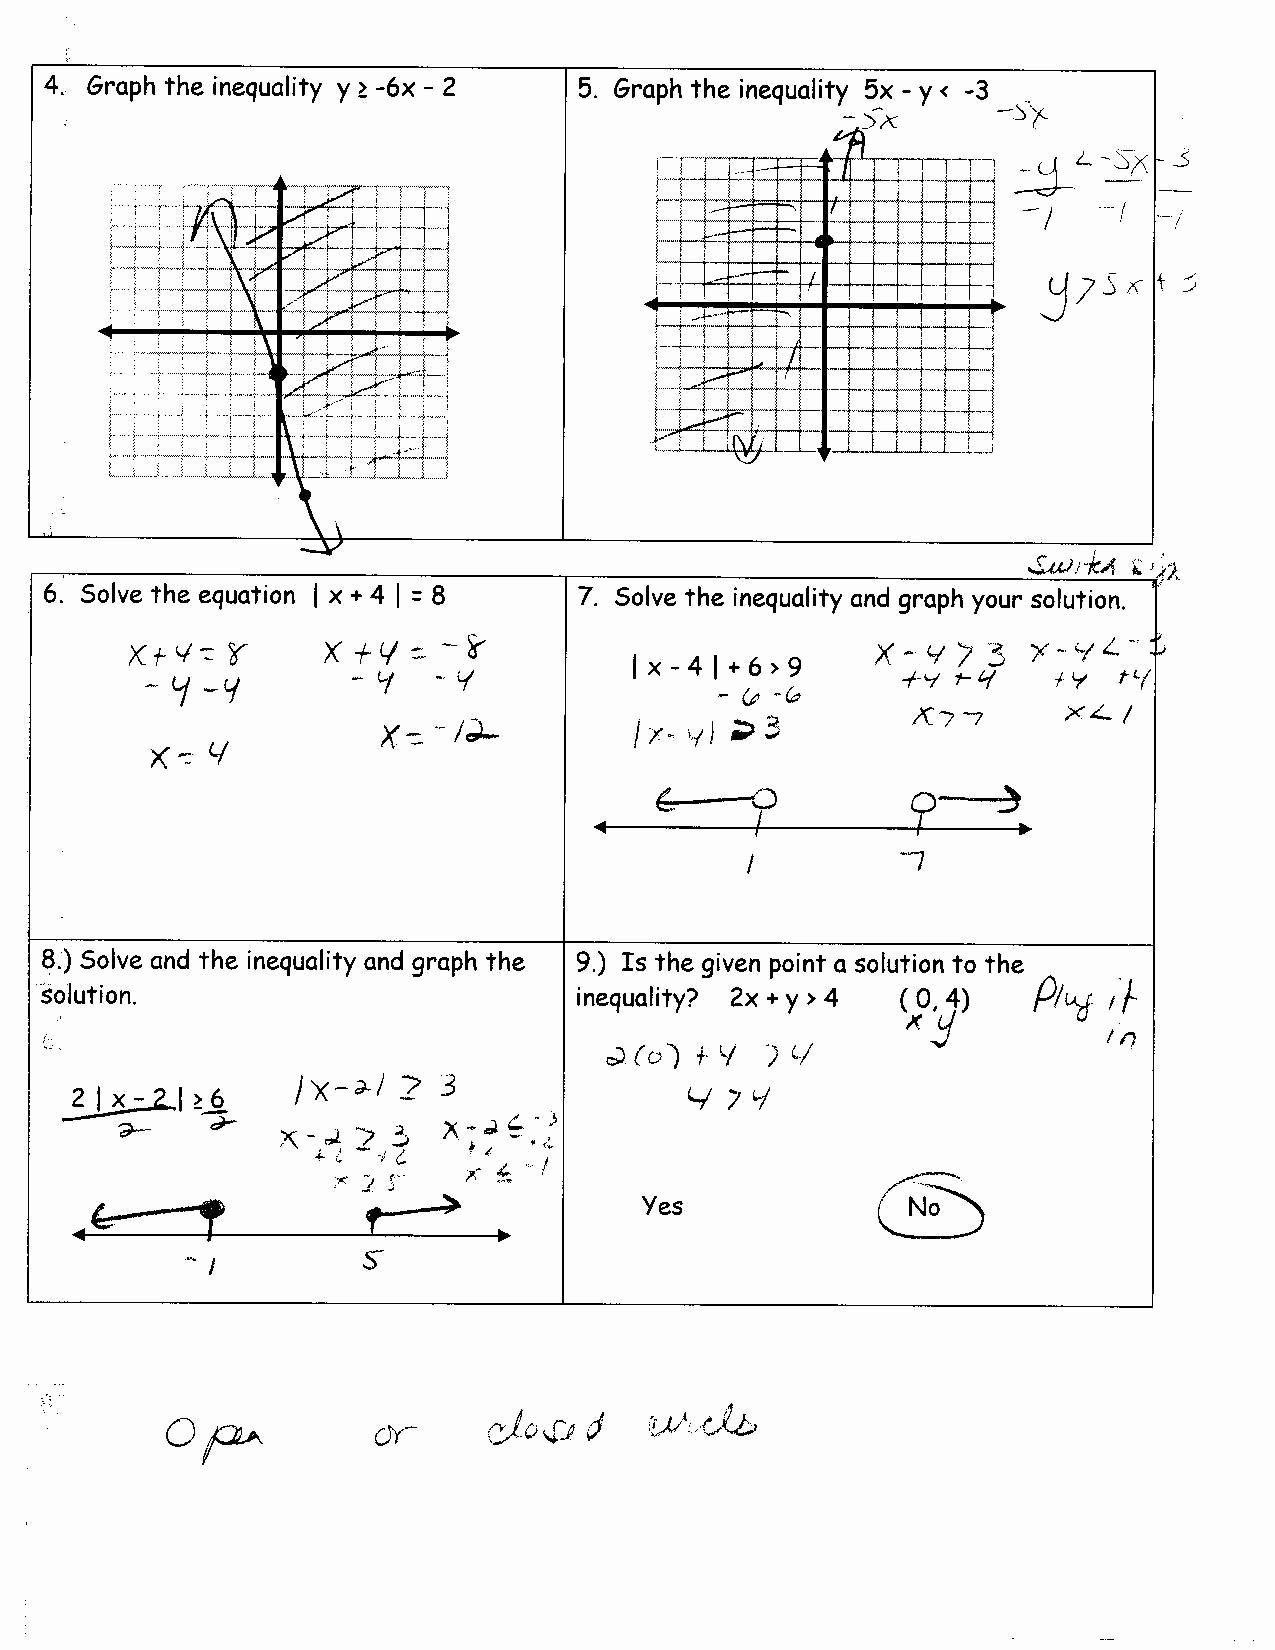 Writing Linear Equations Worksheet New Writing Linear Equations Worksheet Worksheet Idea Template